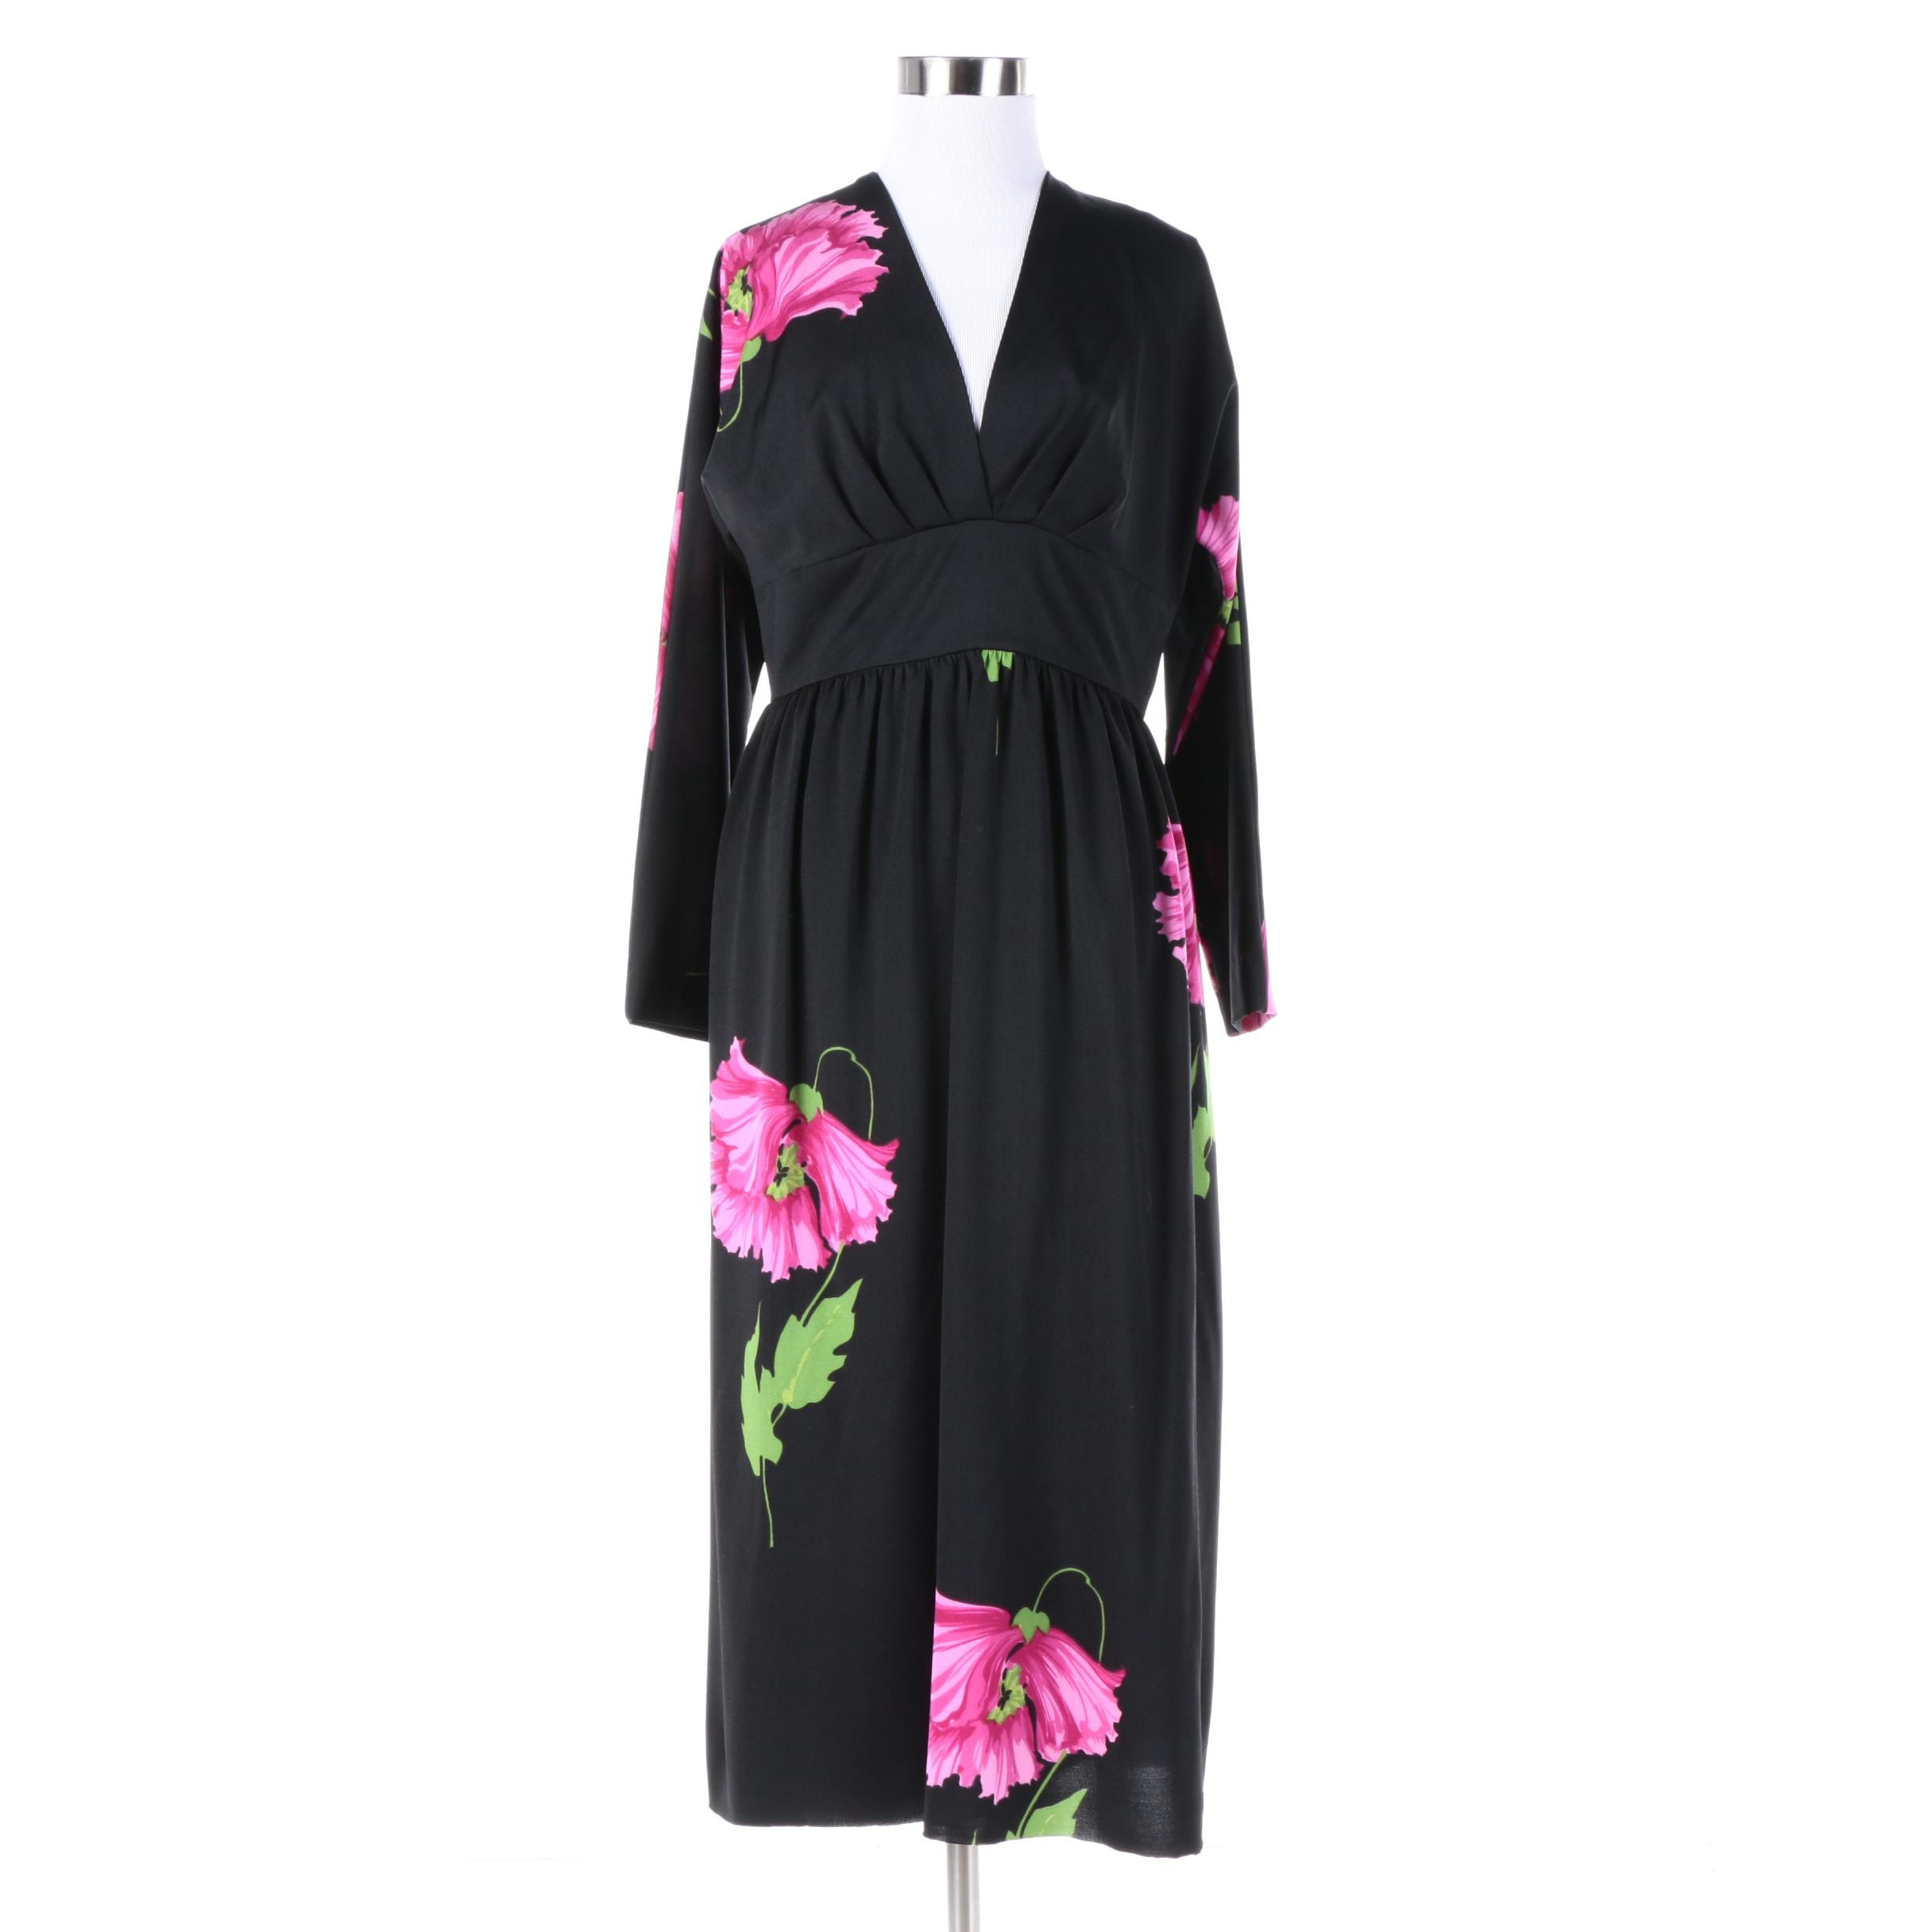 1970s Shannon Rodgers for Jerry Silverman Black Floral Empire Waist Dress